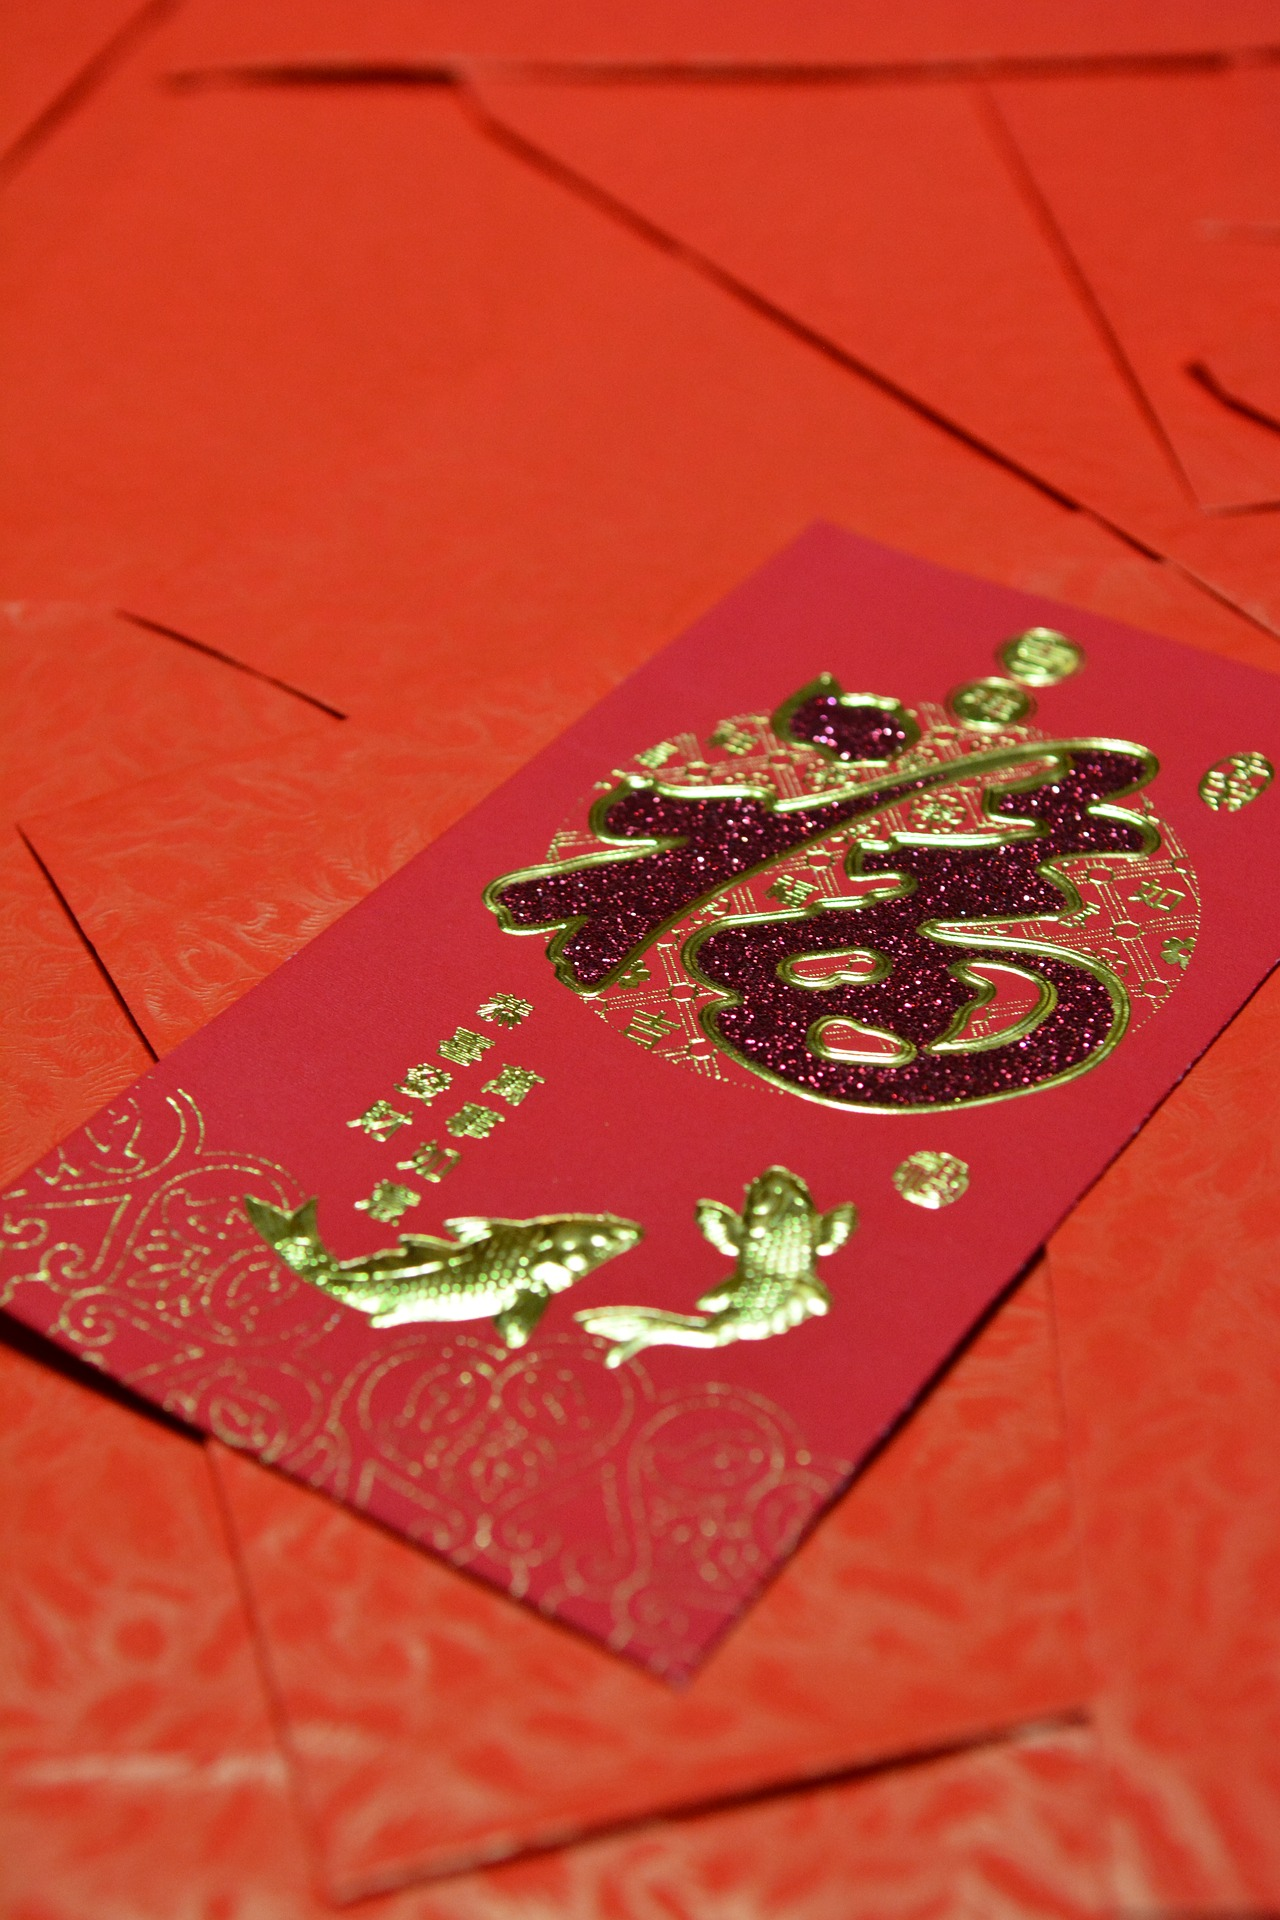 About The Red Envelope Tradition Wind Water Center